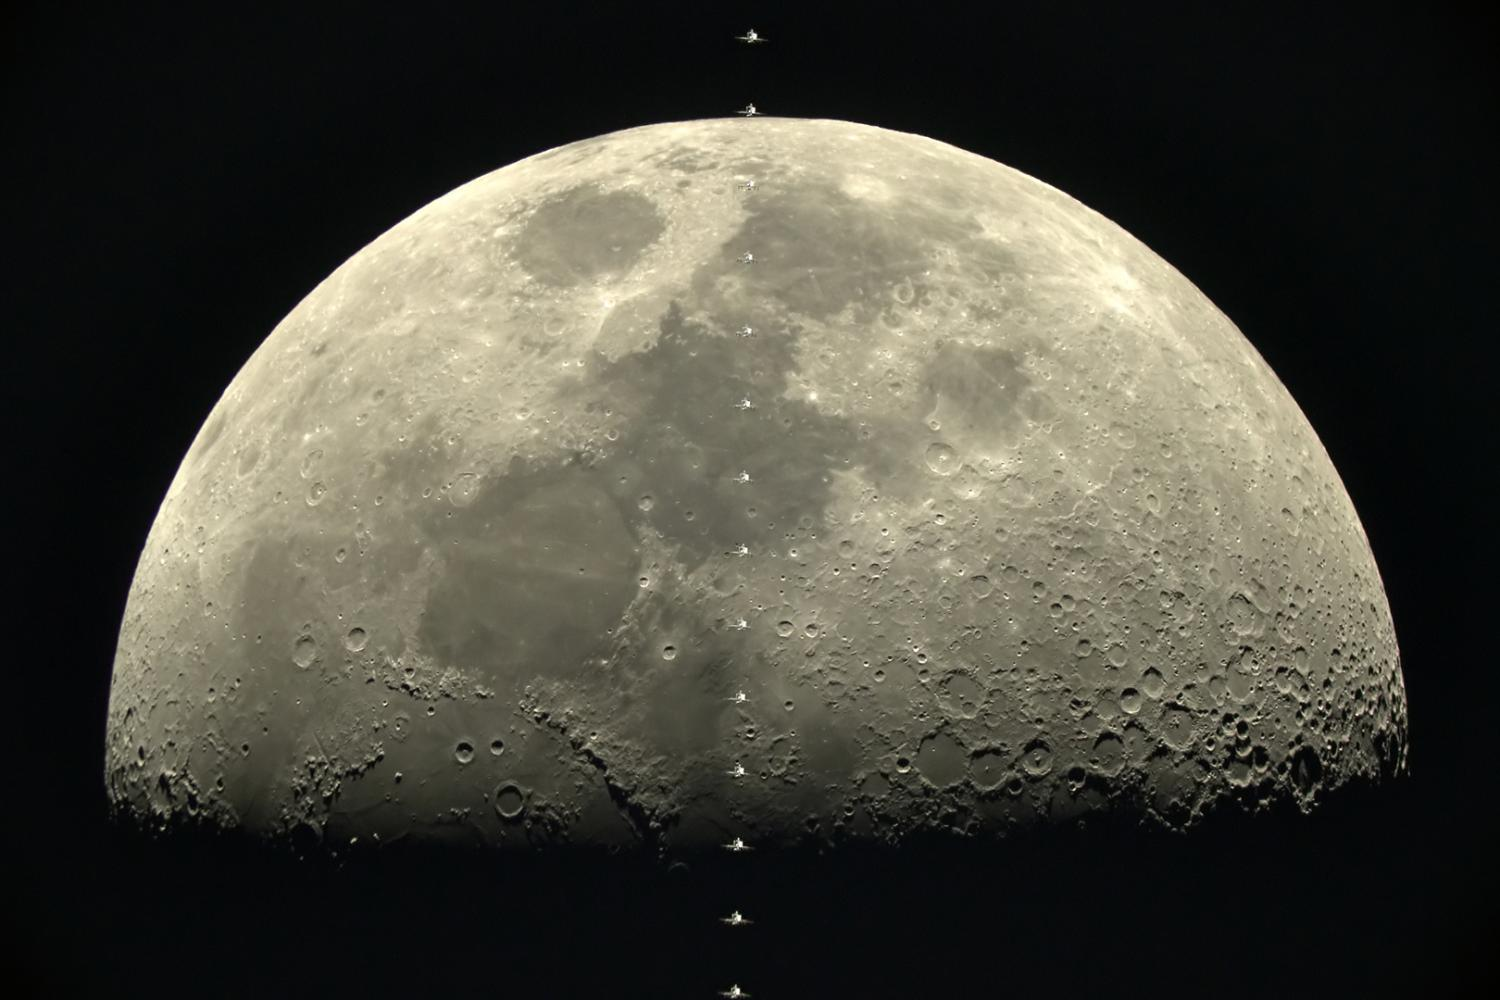 space station lunar transit - photo #11